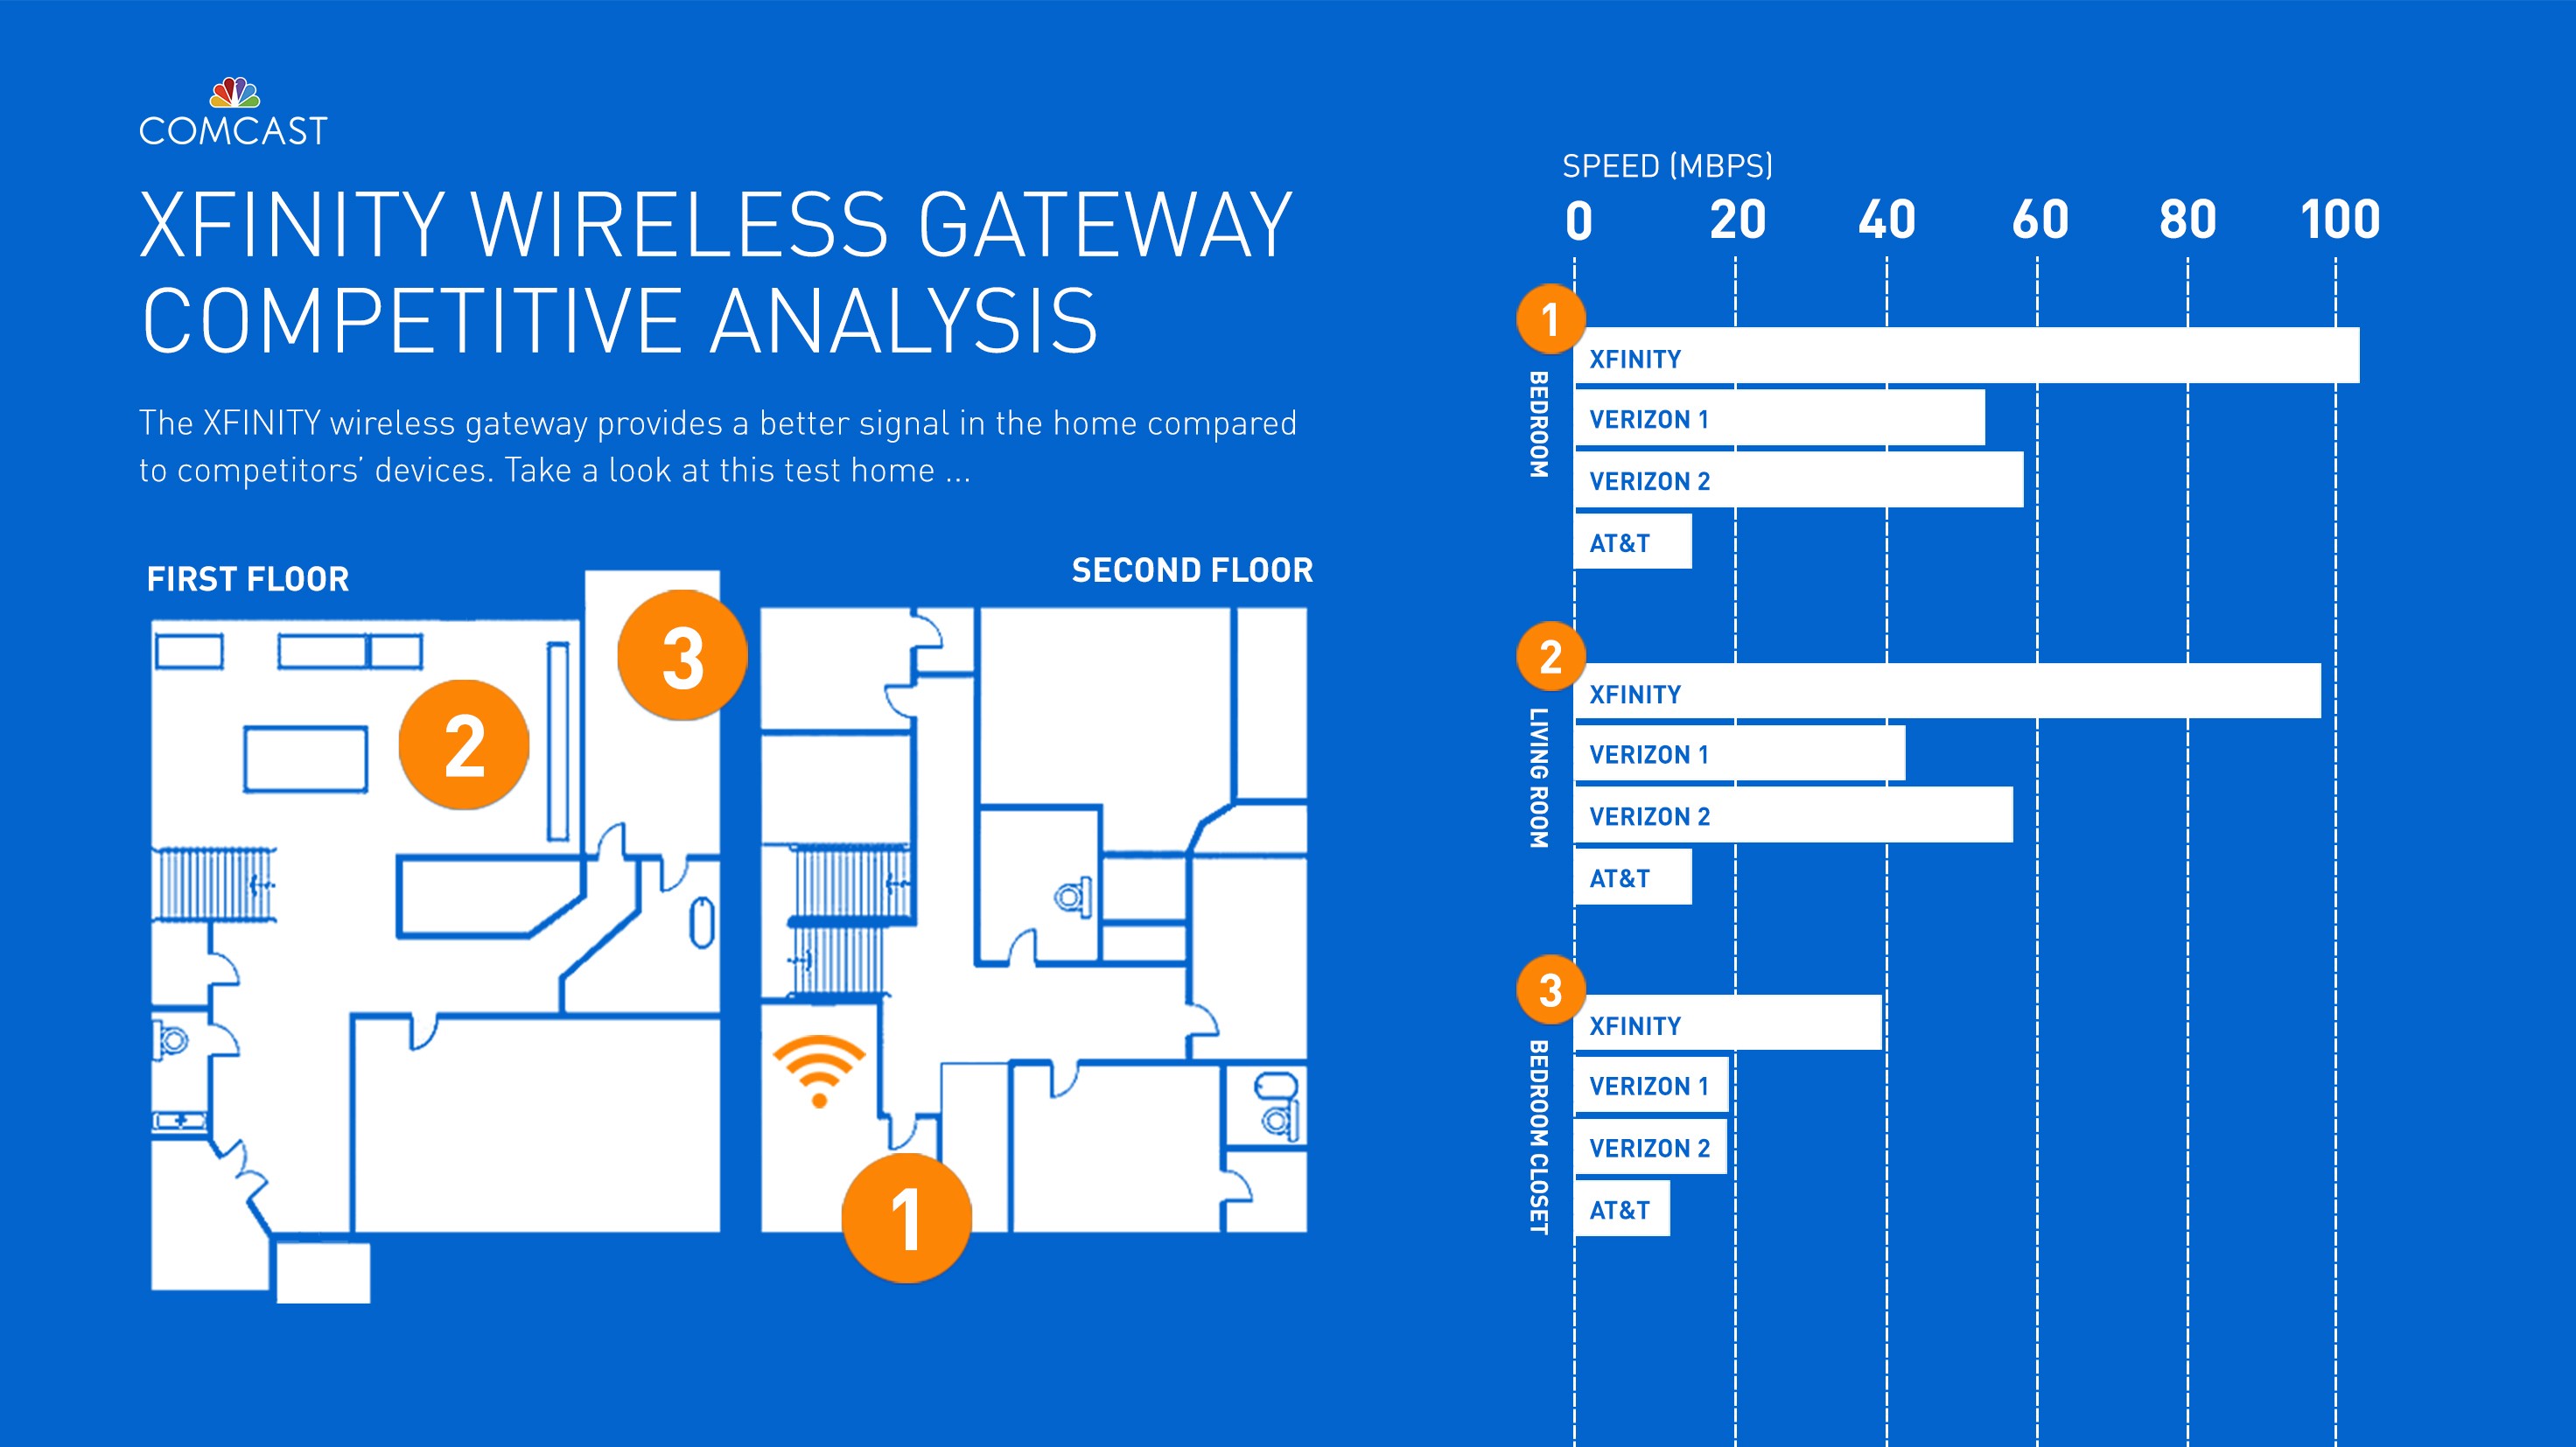 comcast's new xfinity wireless gateway powers the nation's fastest comcast hd cable box setup diagram comcast's new xfinity wireless gateway powers the nation's fastest in home wifi with unmatched speeds and broadest range business wire